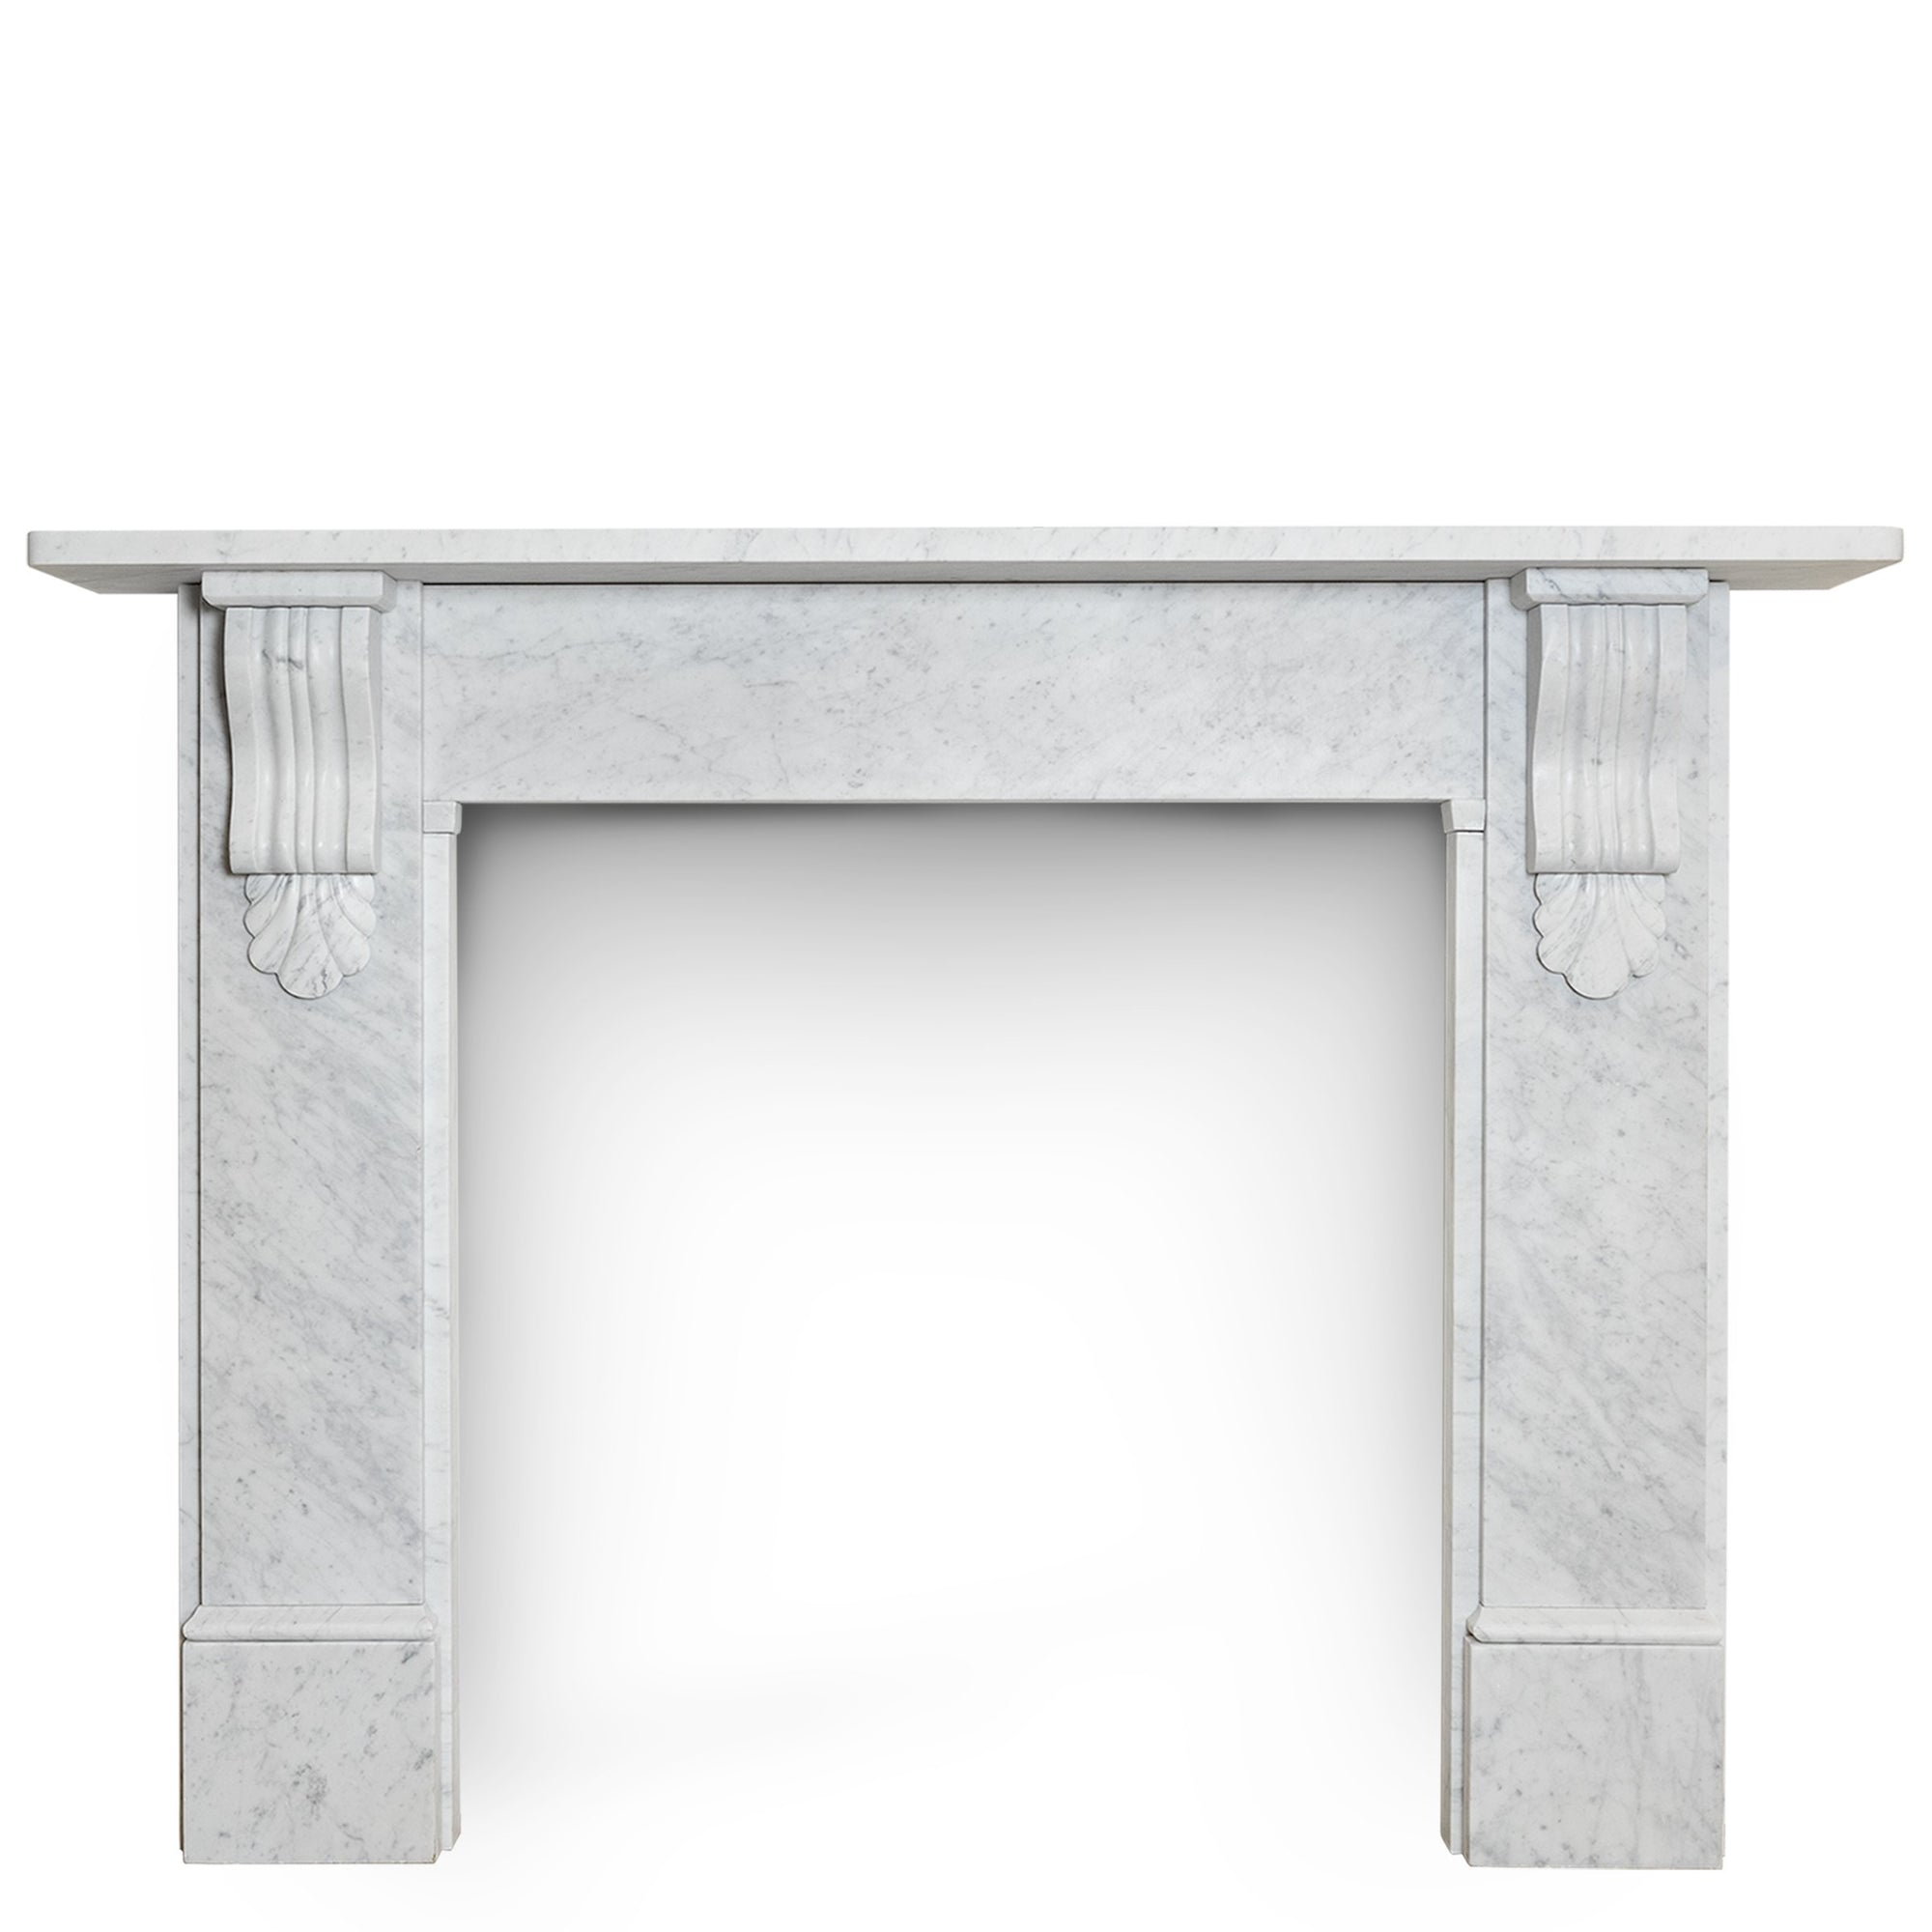 Bespoke Victorian Style Carrara Marble Fireplace Surround with Corbels